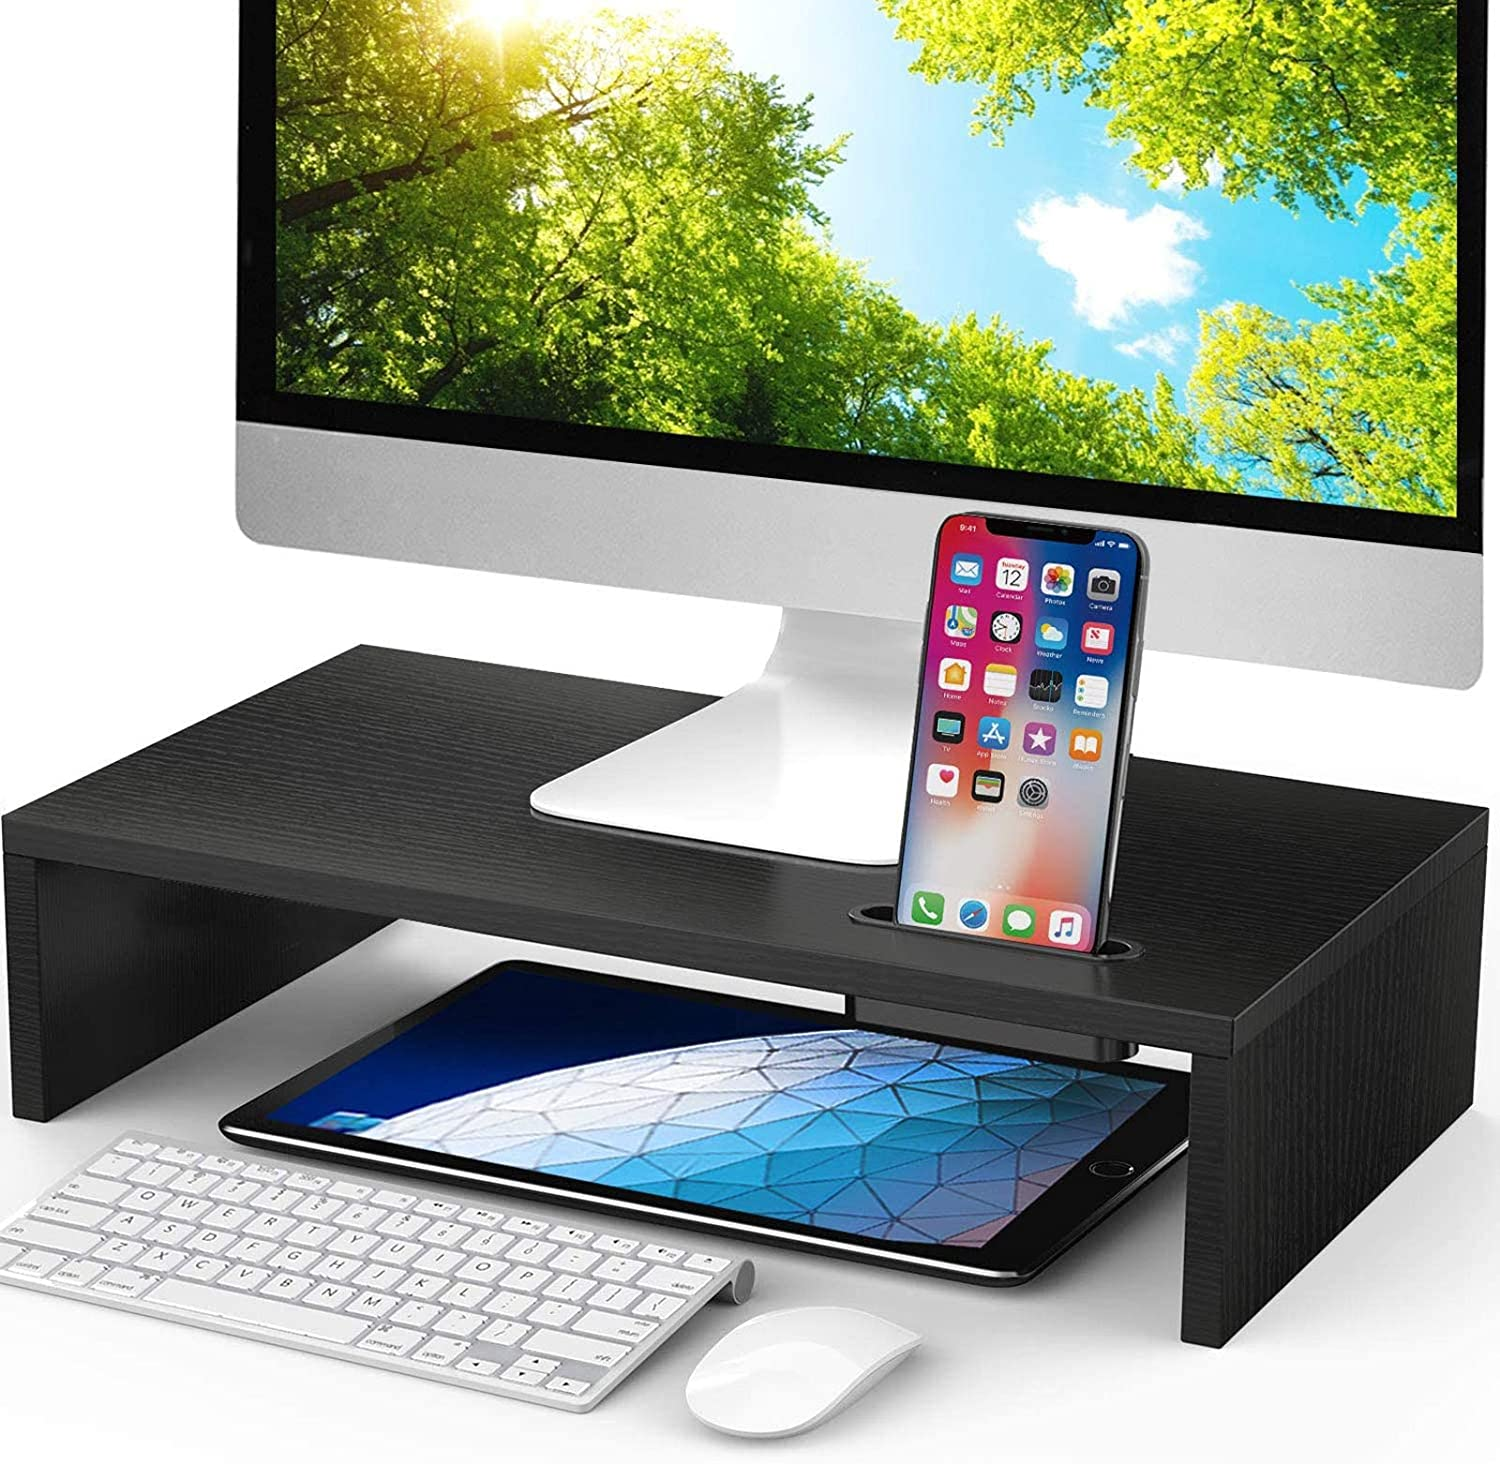 LORYERGO Monitor Stand - 16.5 inch Monitor Stand Riser, Monitor Riser w/Slot for Cellphone & Cable Management, Laptop Stand for Laptop, Computer, Printer & Office Supplies